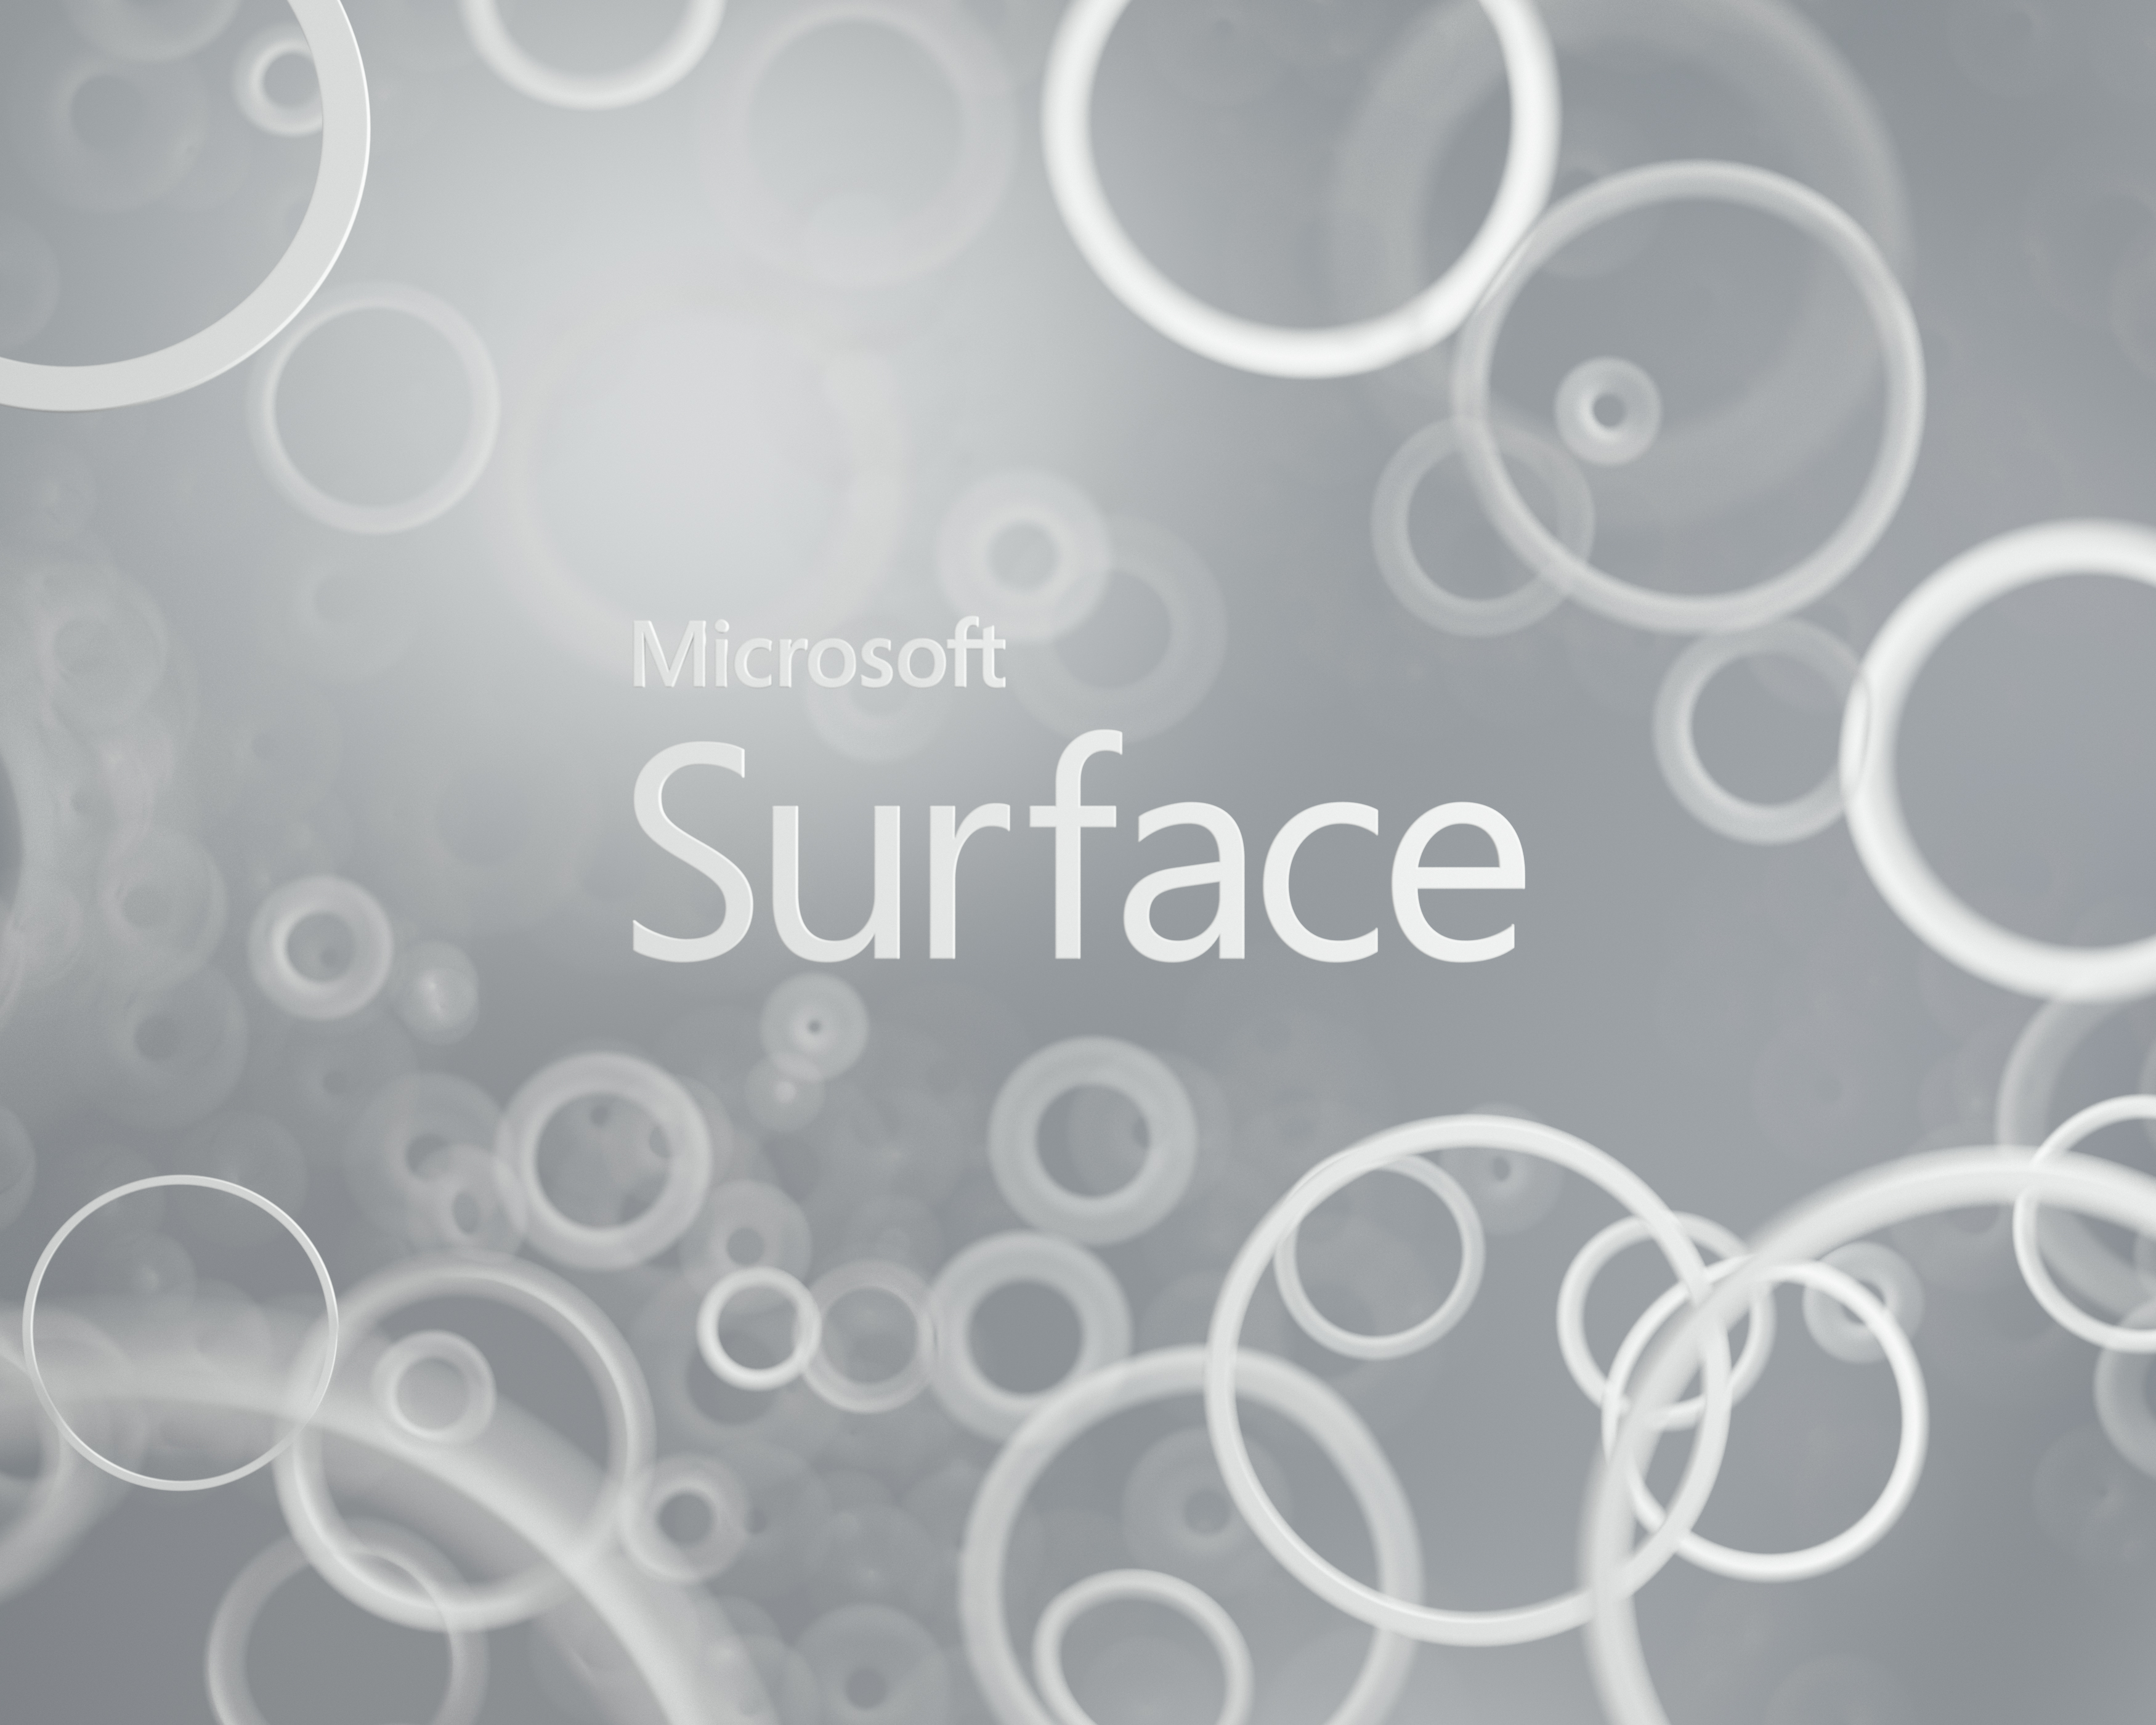 surface pro 3 wallpaper 1440 Quotes 3500x2800